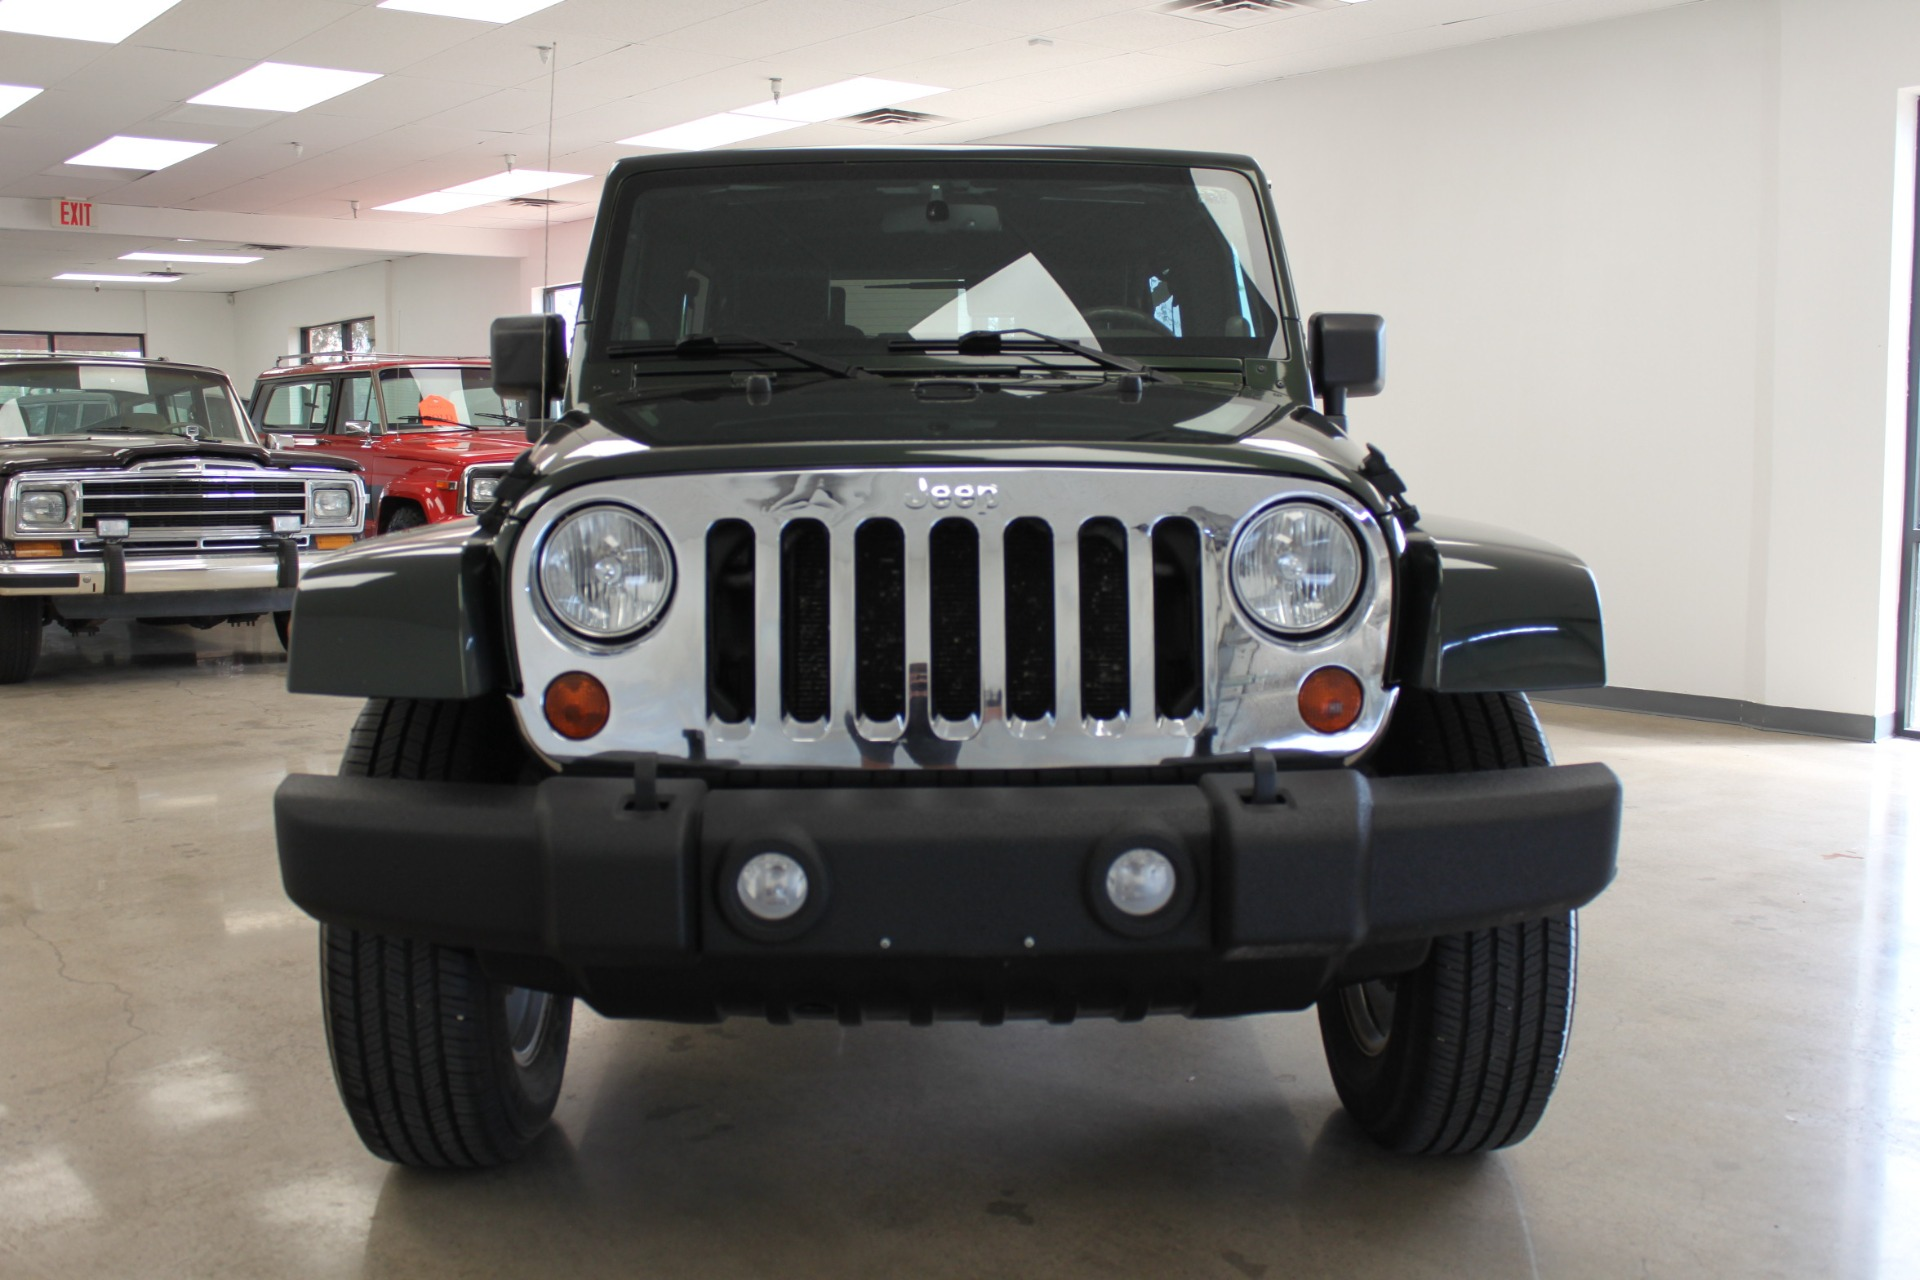 Used-2010-Jeep-Wrangler-Unlimited-Sahara-4X4-Wrangler